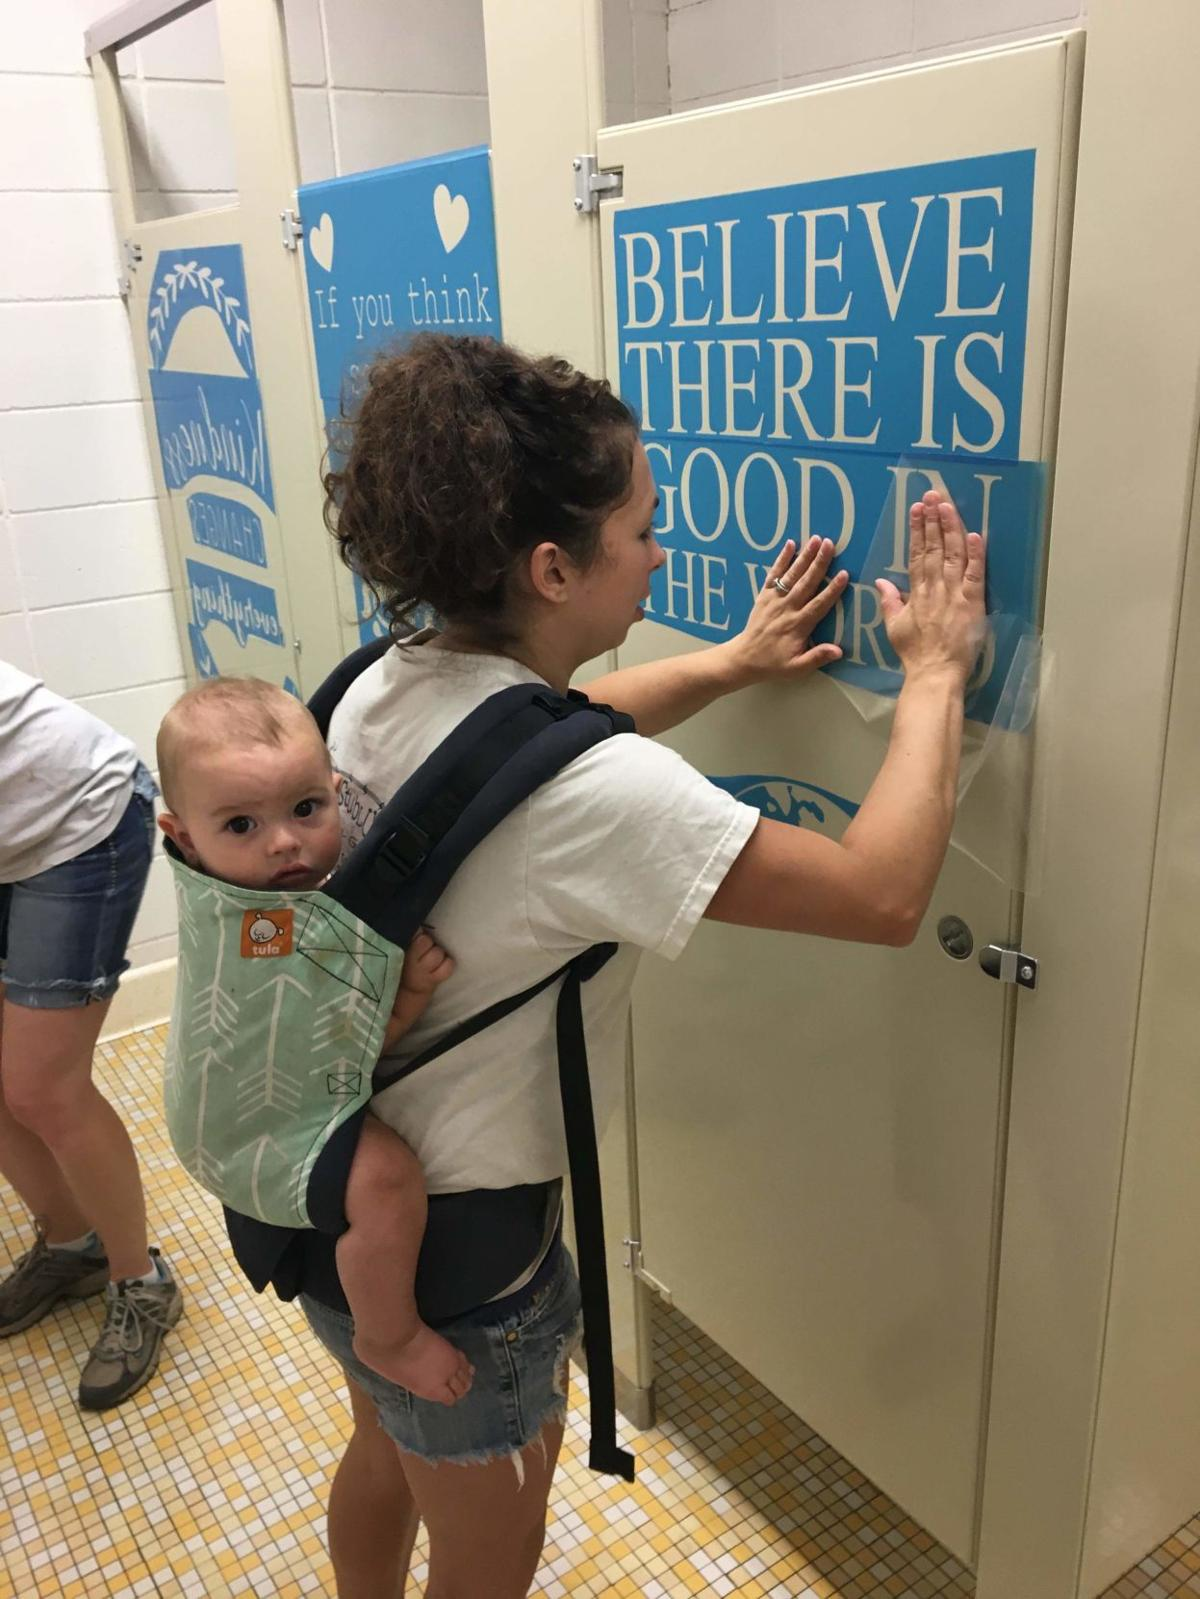 Prairie parents put their thoughts on display; Quotes used as inspiration, conversation starters